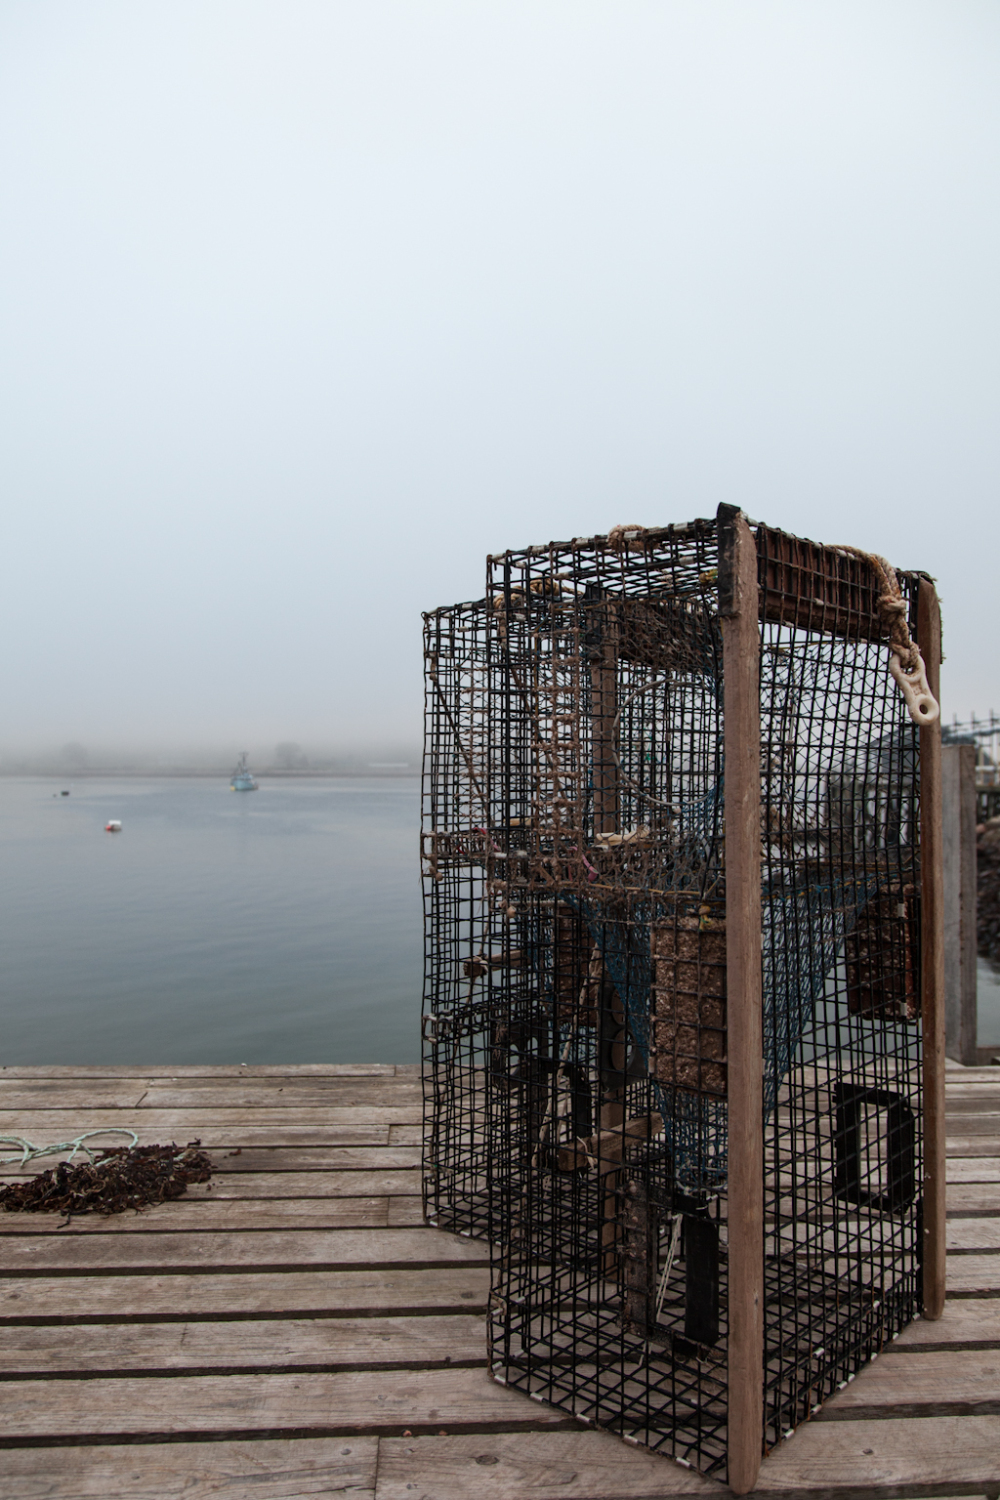 New lobster pots waiting to be used